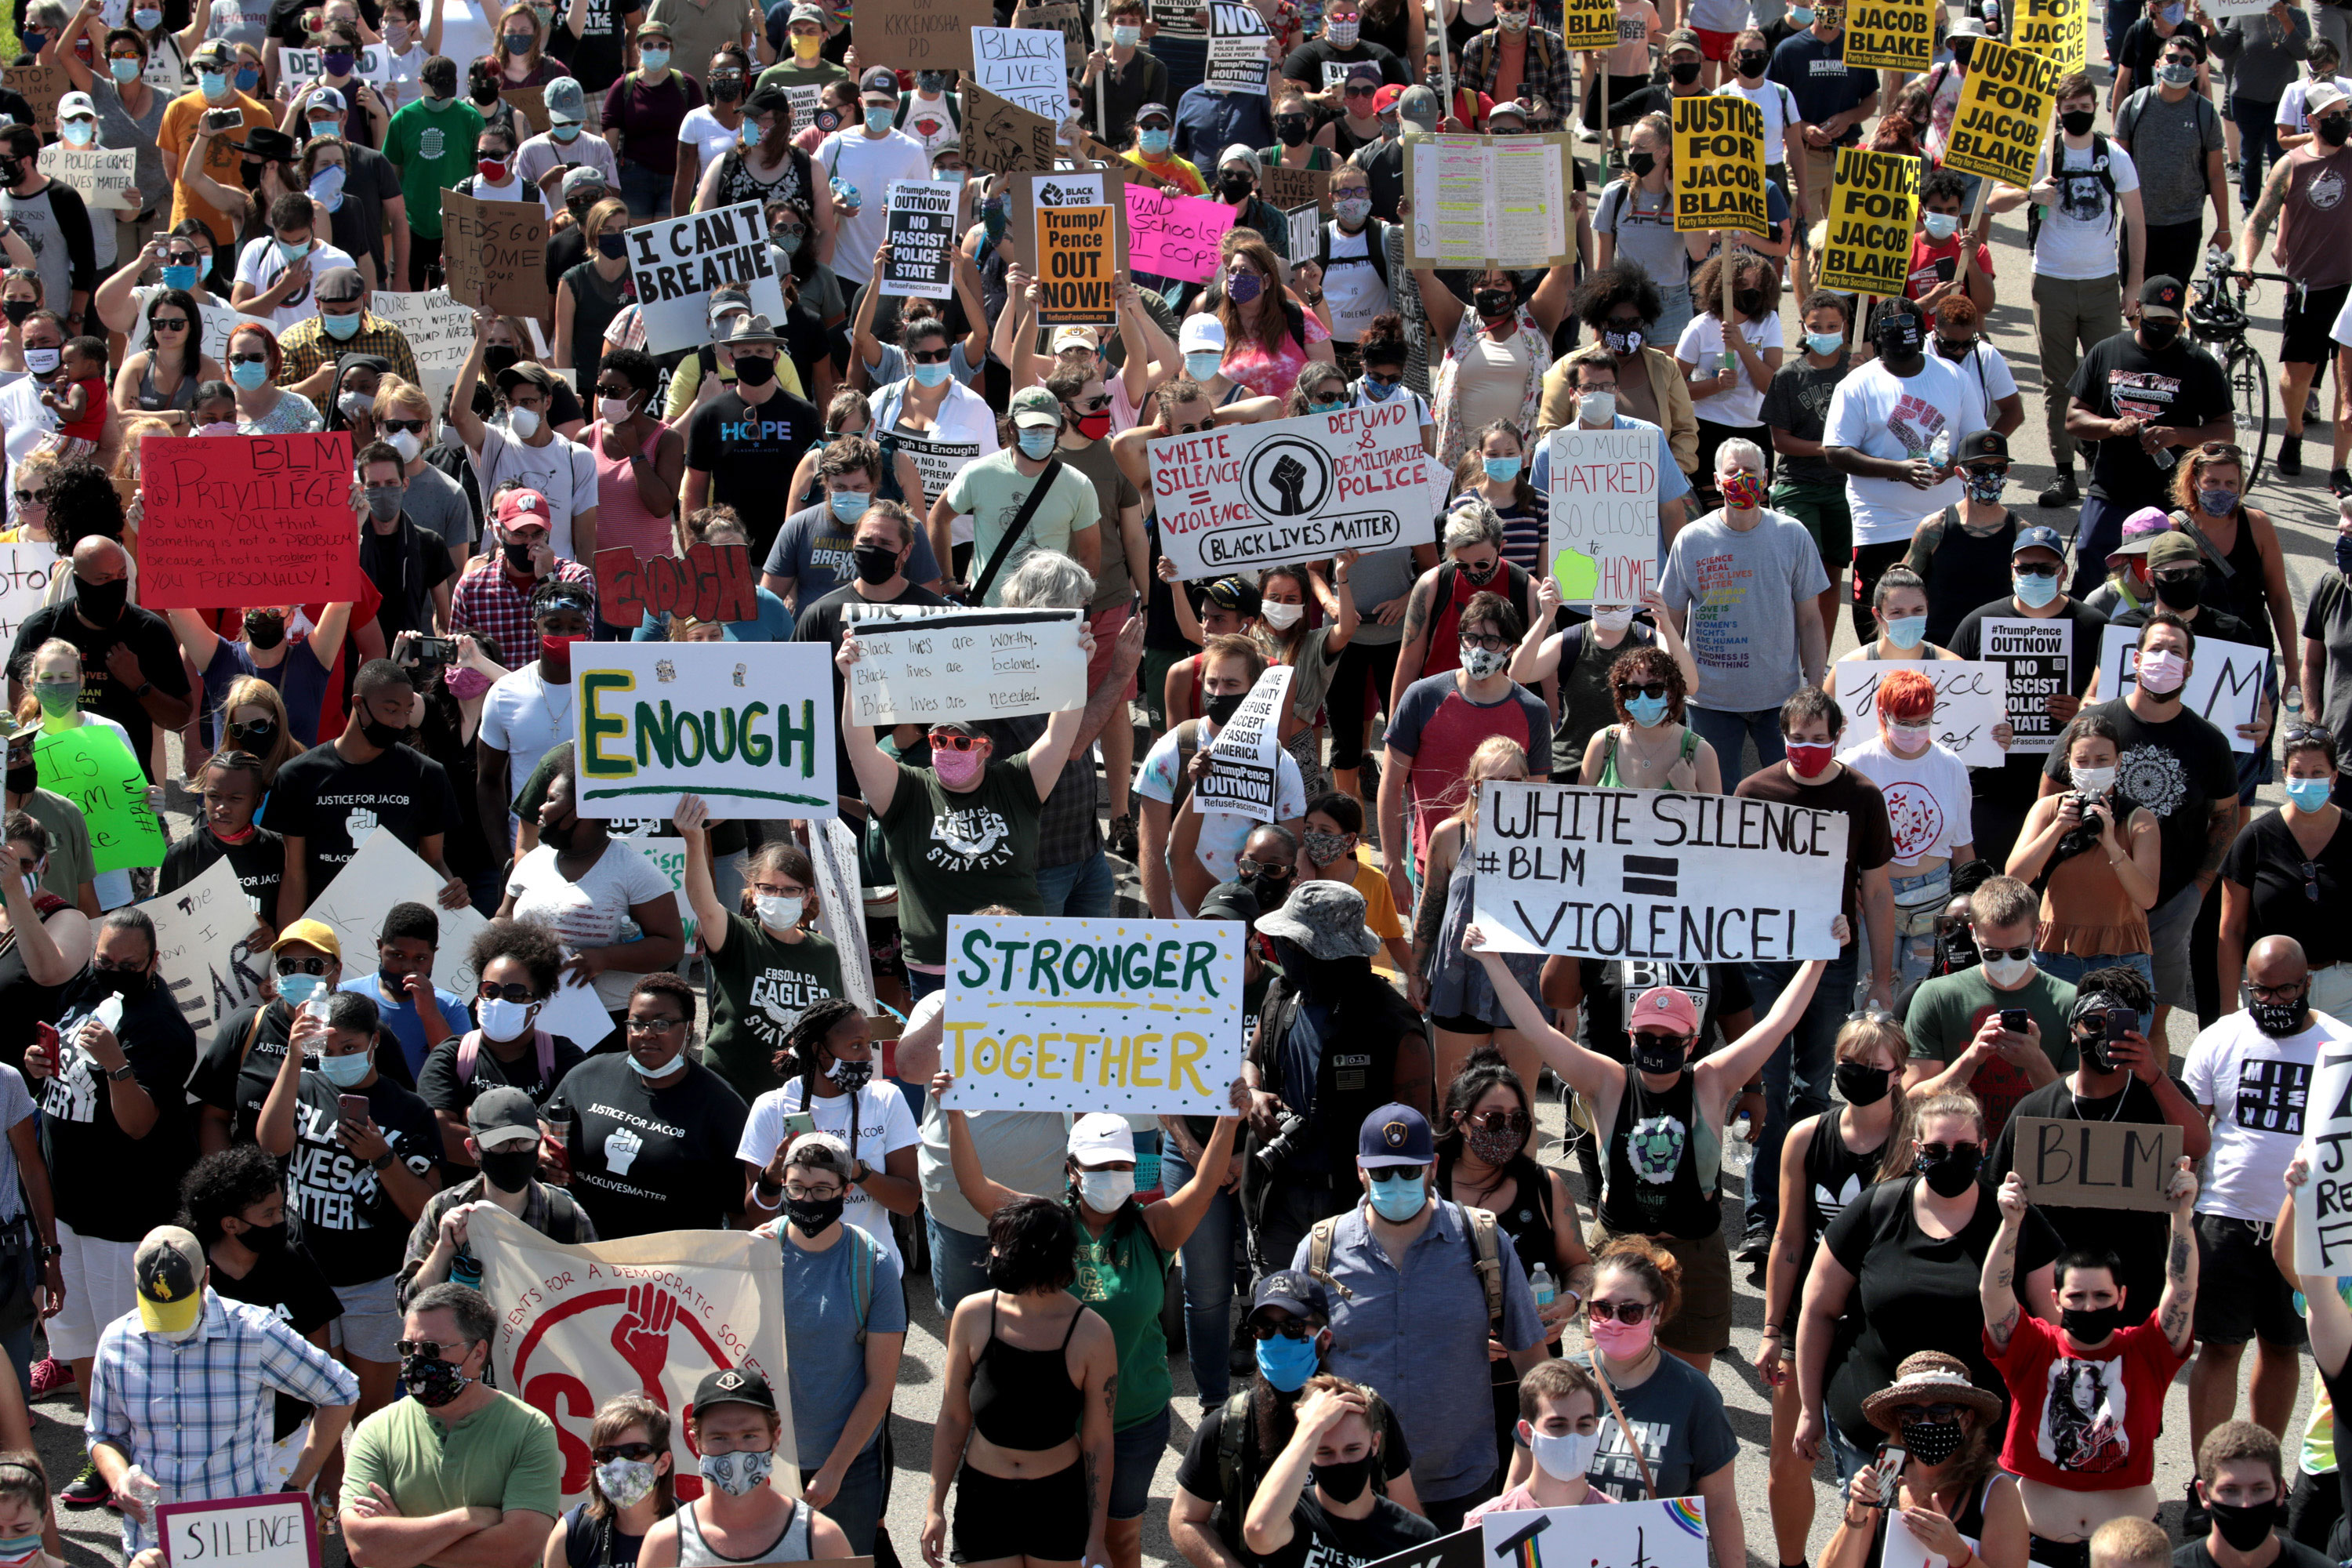 People march to the Kenosha County Courthouse on August 29 in Kenosha, Wisconsin.